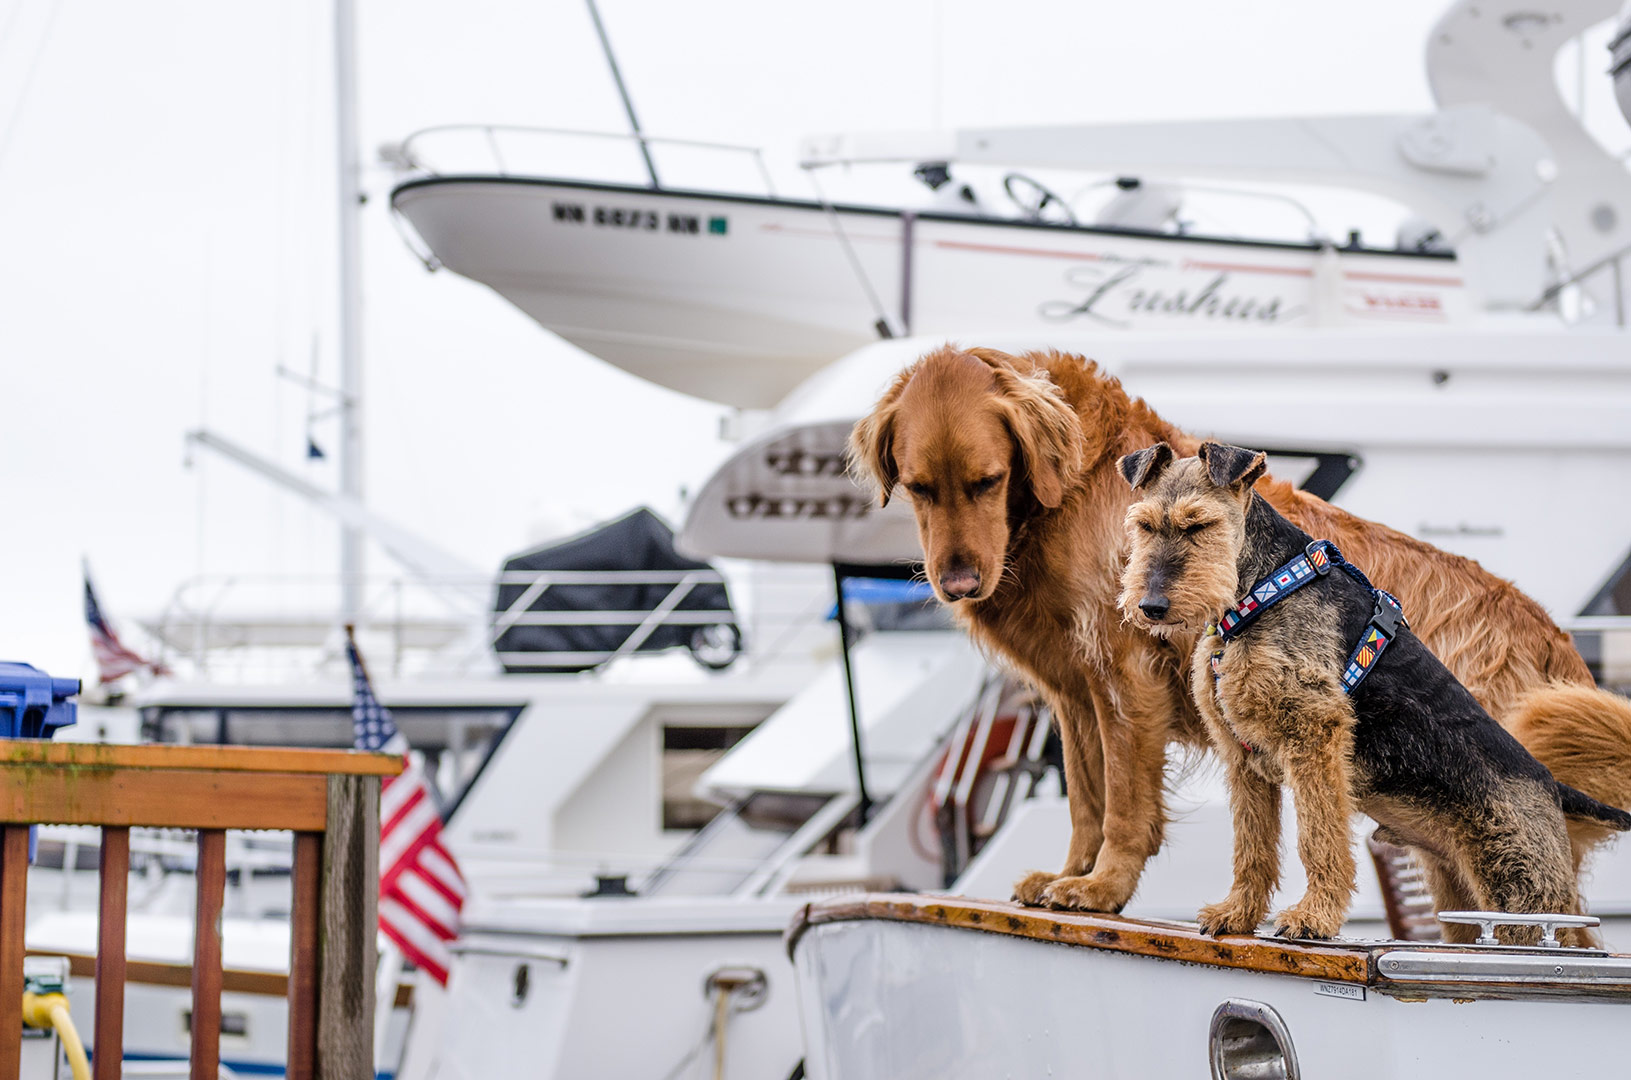 two-friendly-dogs-sitting-on-a-boat-looking-into-the-water